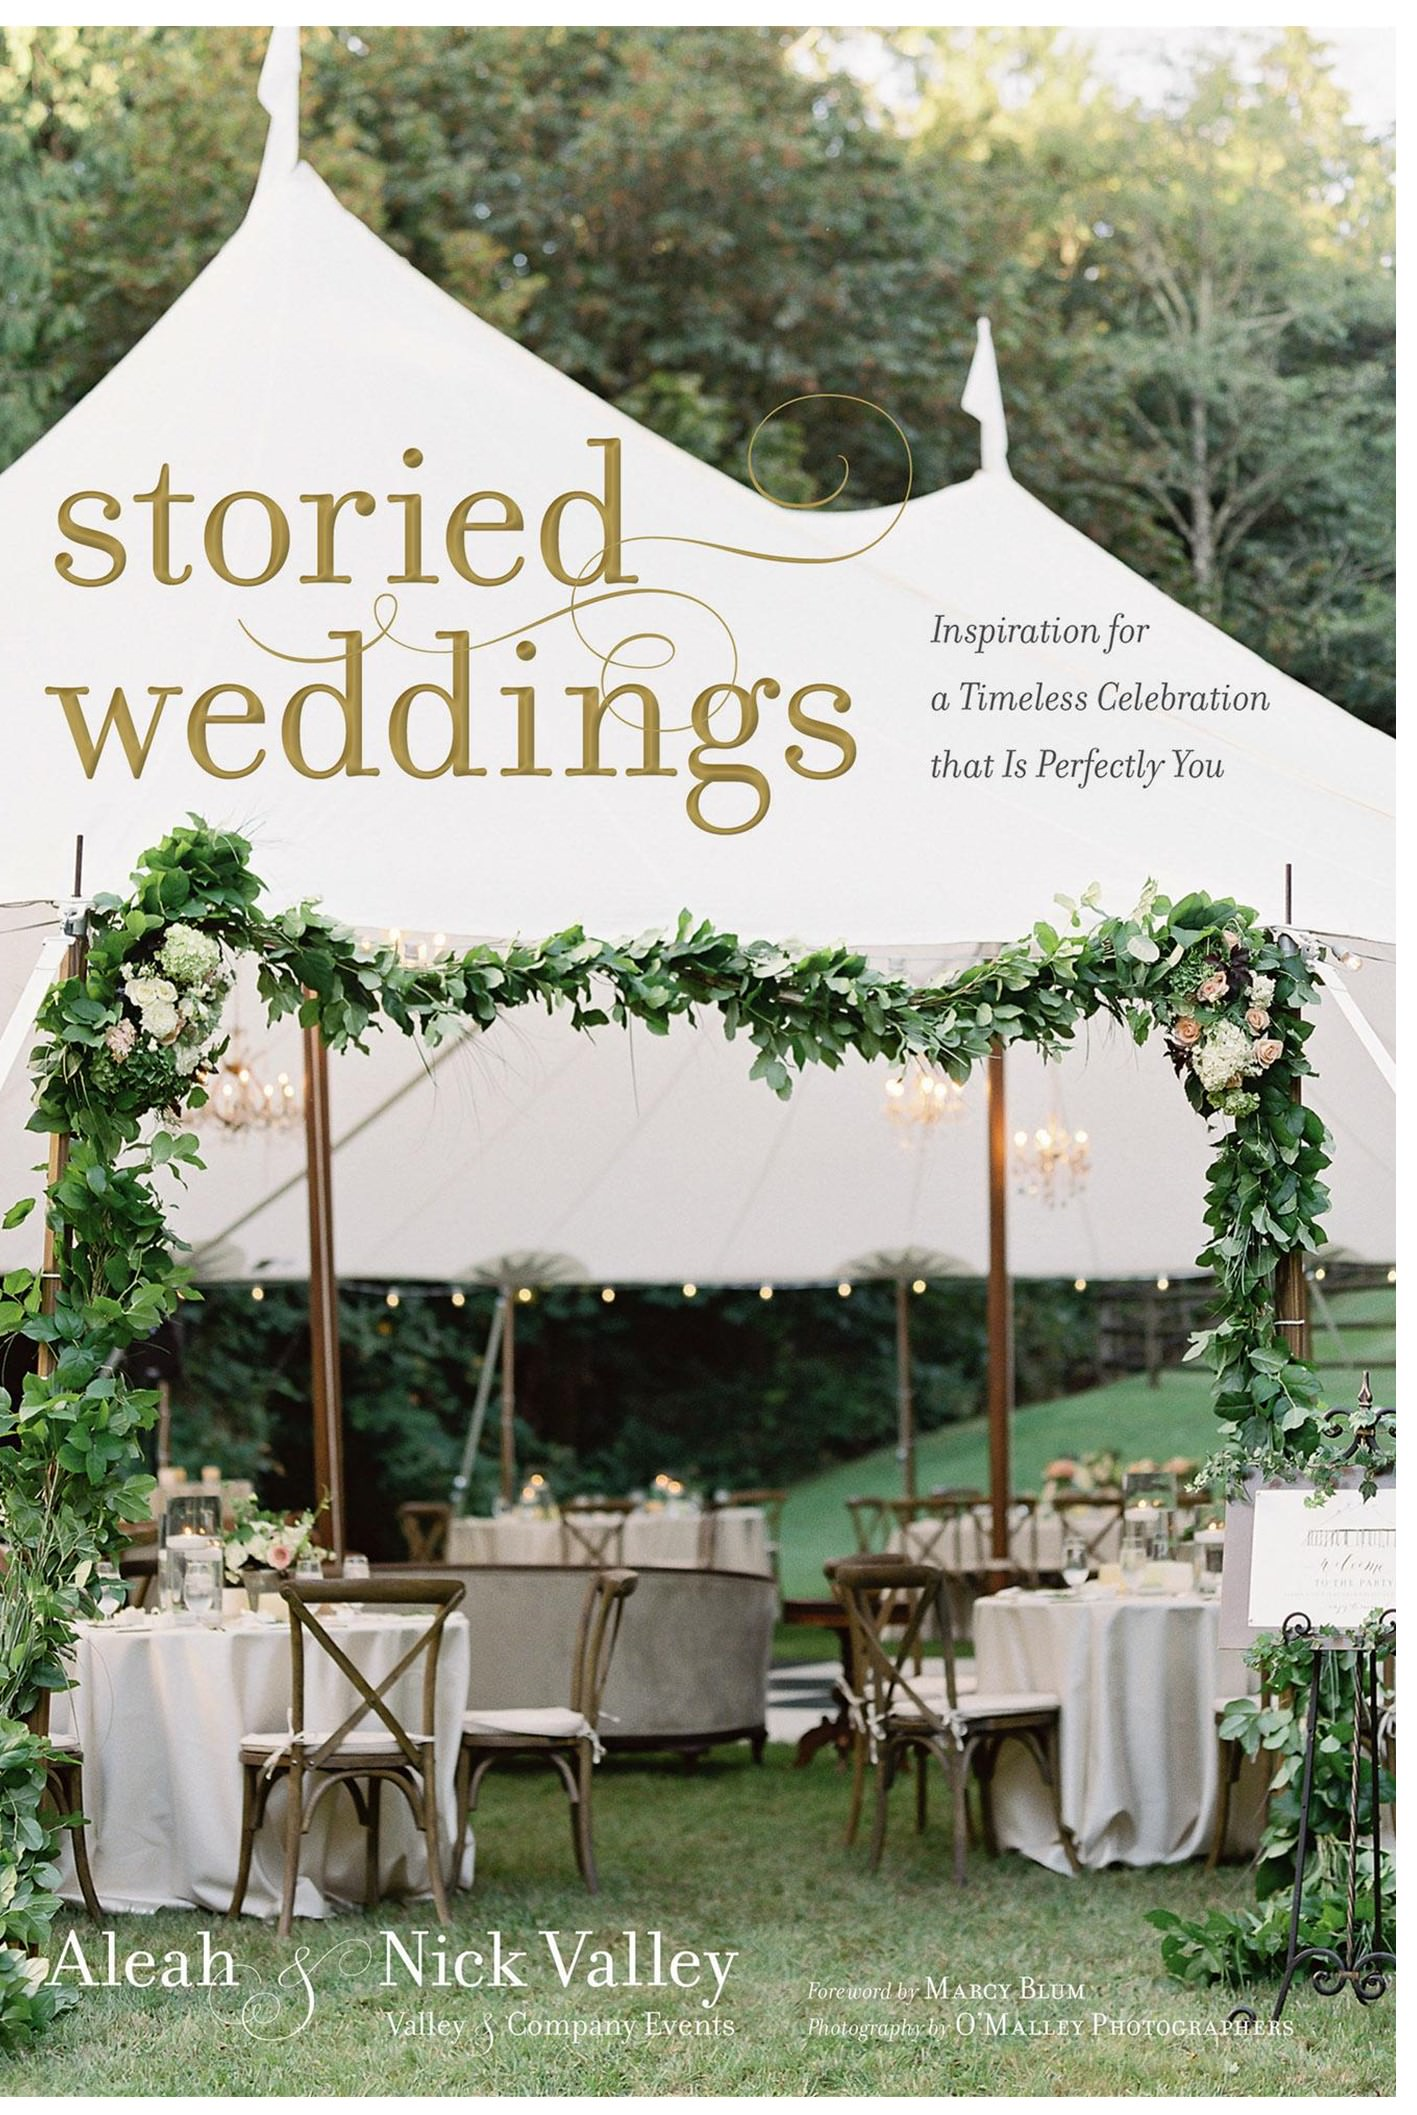 Signed Copy of Storied Weddings